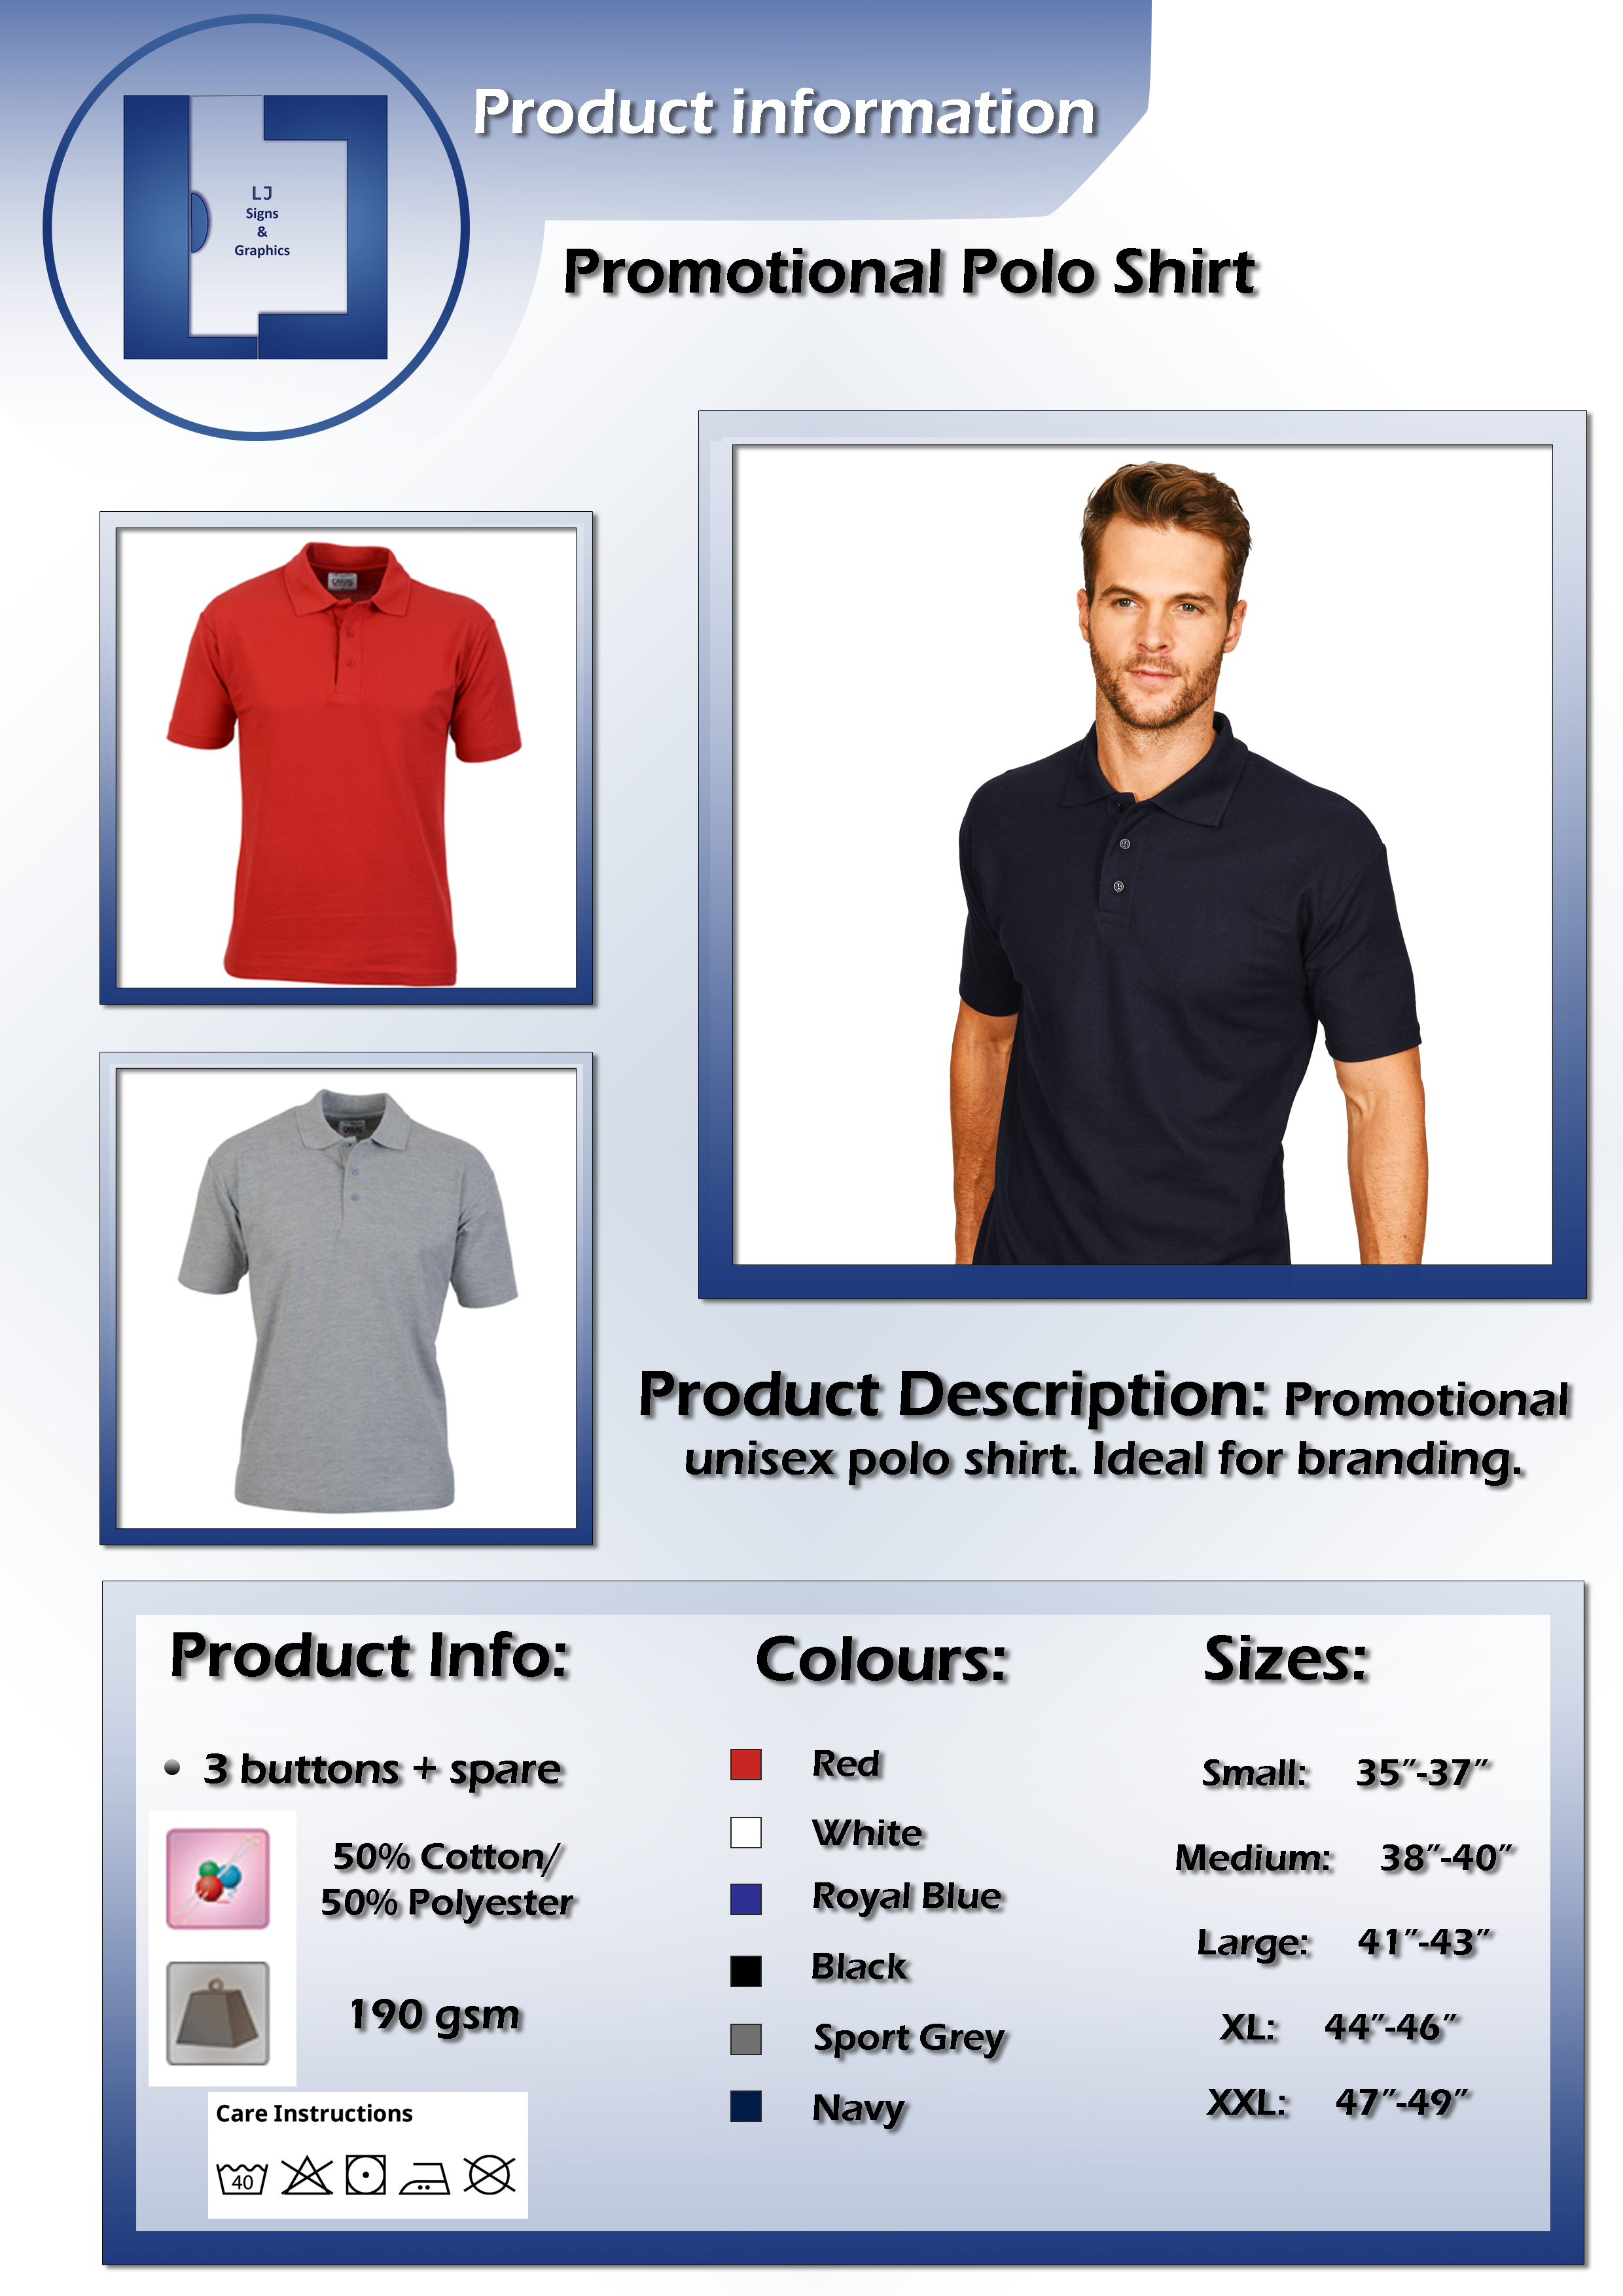 Product information sheet - Promotional Polo